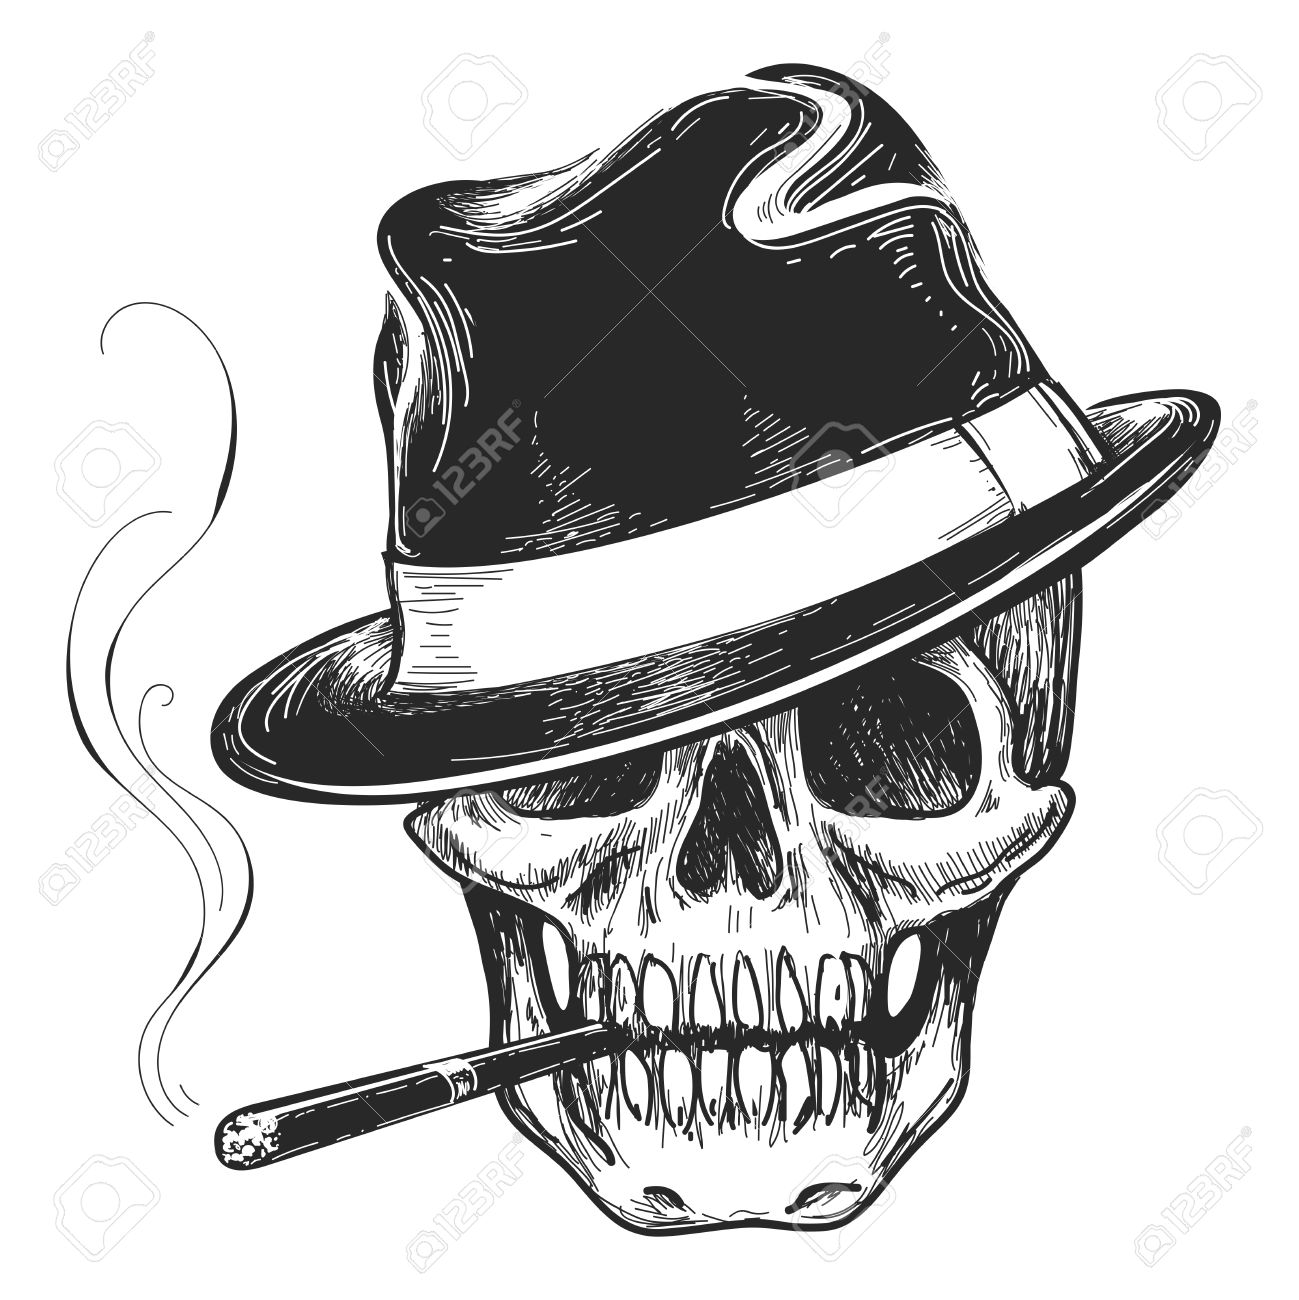 Gangster skull tattoo. Death head with cigar and hat vector illustration - 60858280